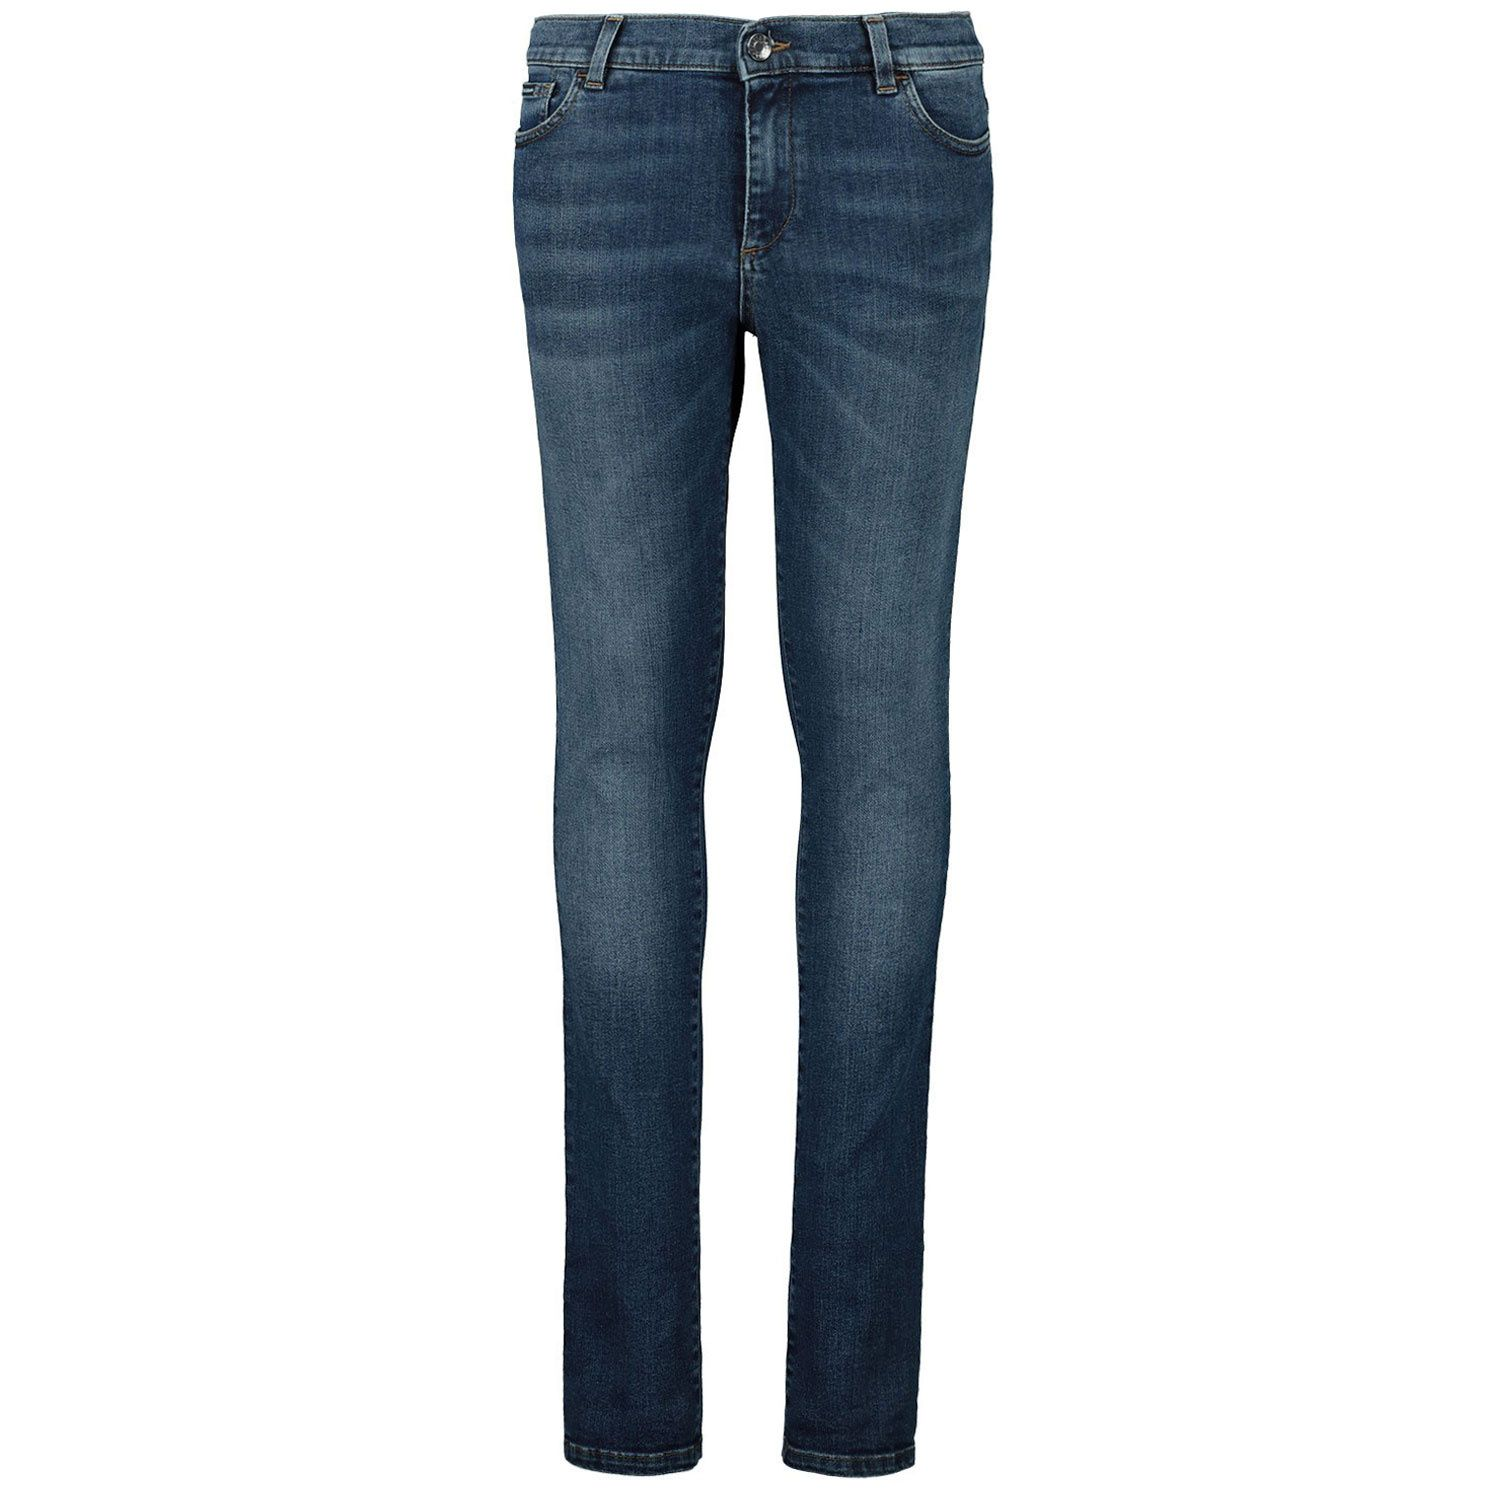 Picture of Dolce & Gabbana L41F96/LD725 kids jeans jeans